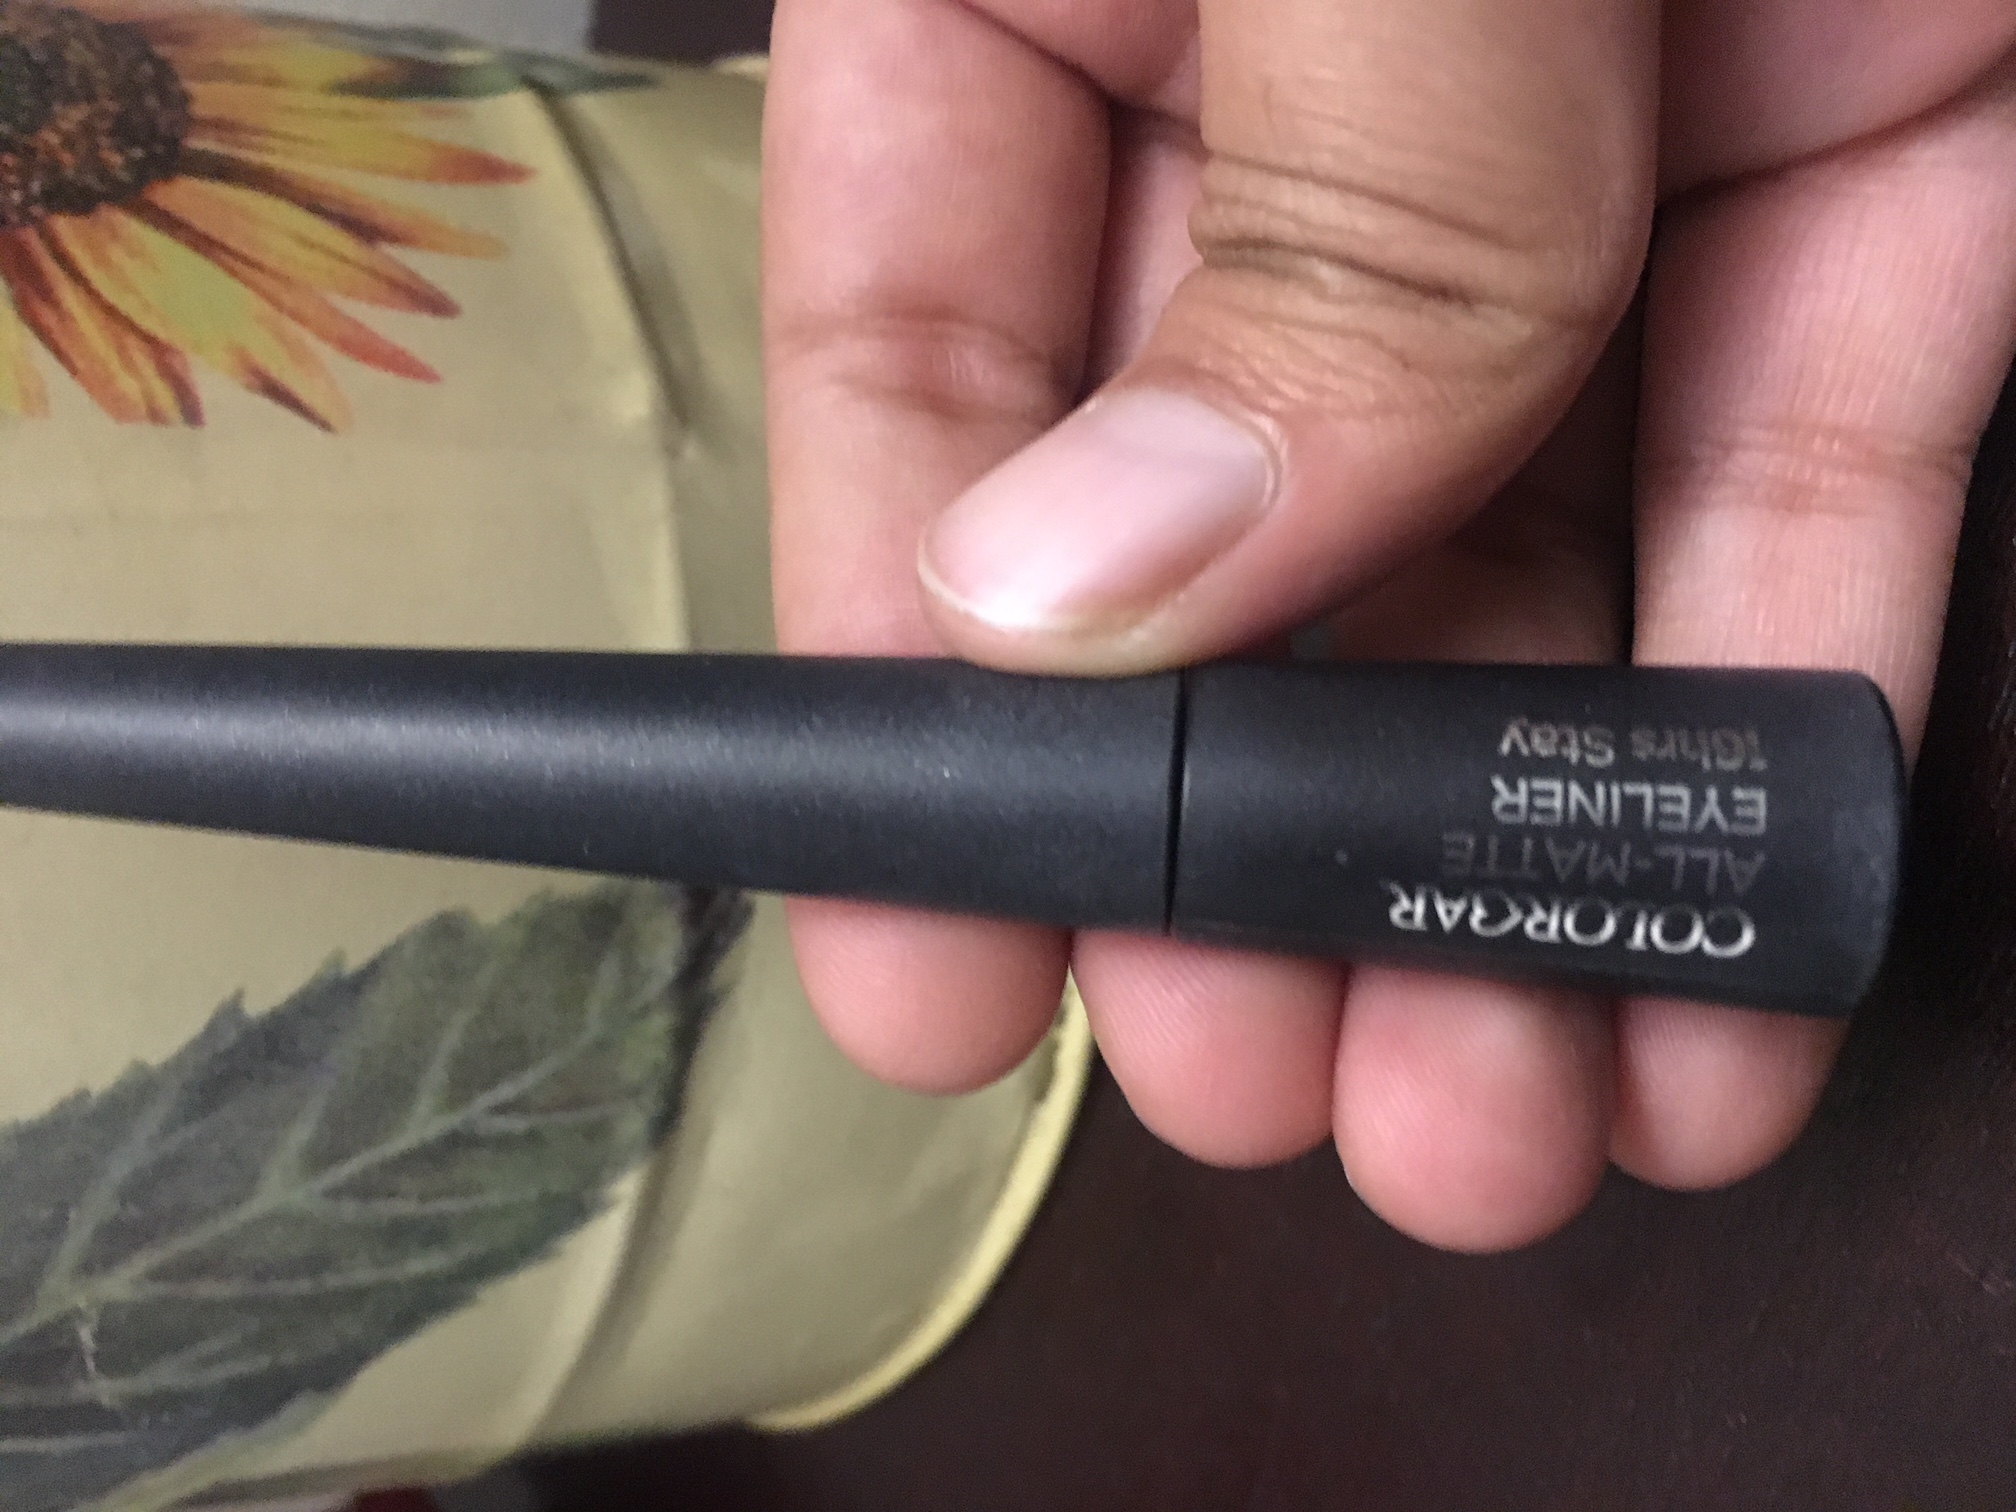 Colorbar All Matte Eyeliner-Just okay-By prernakapur